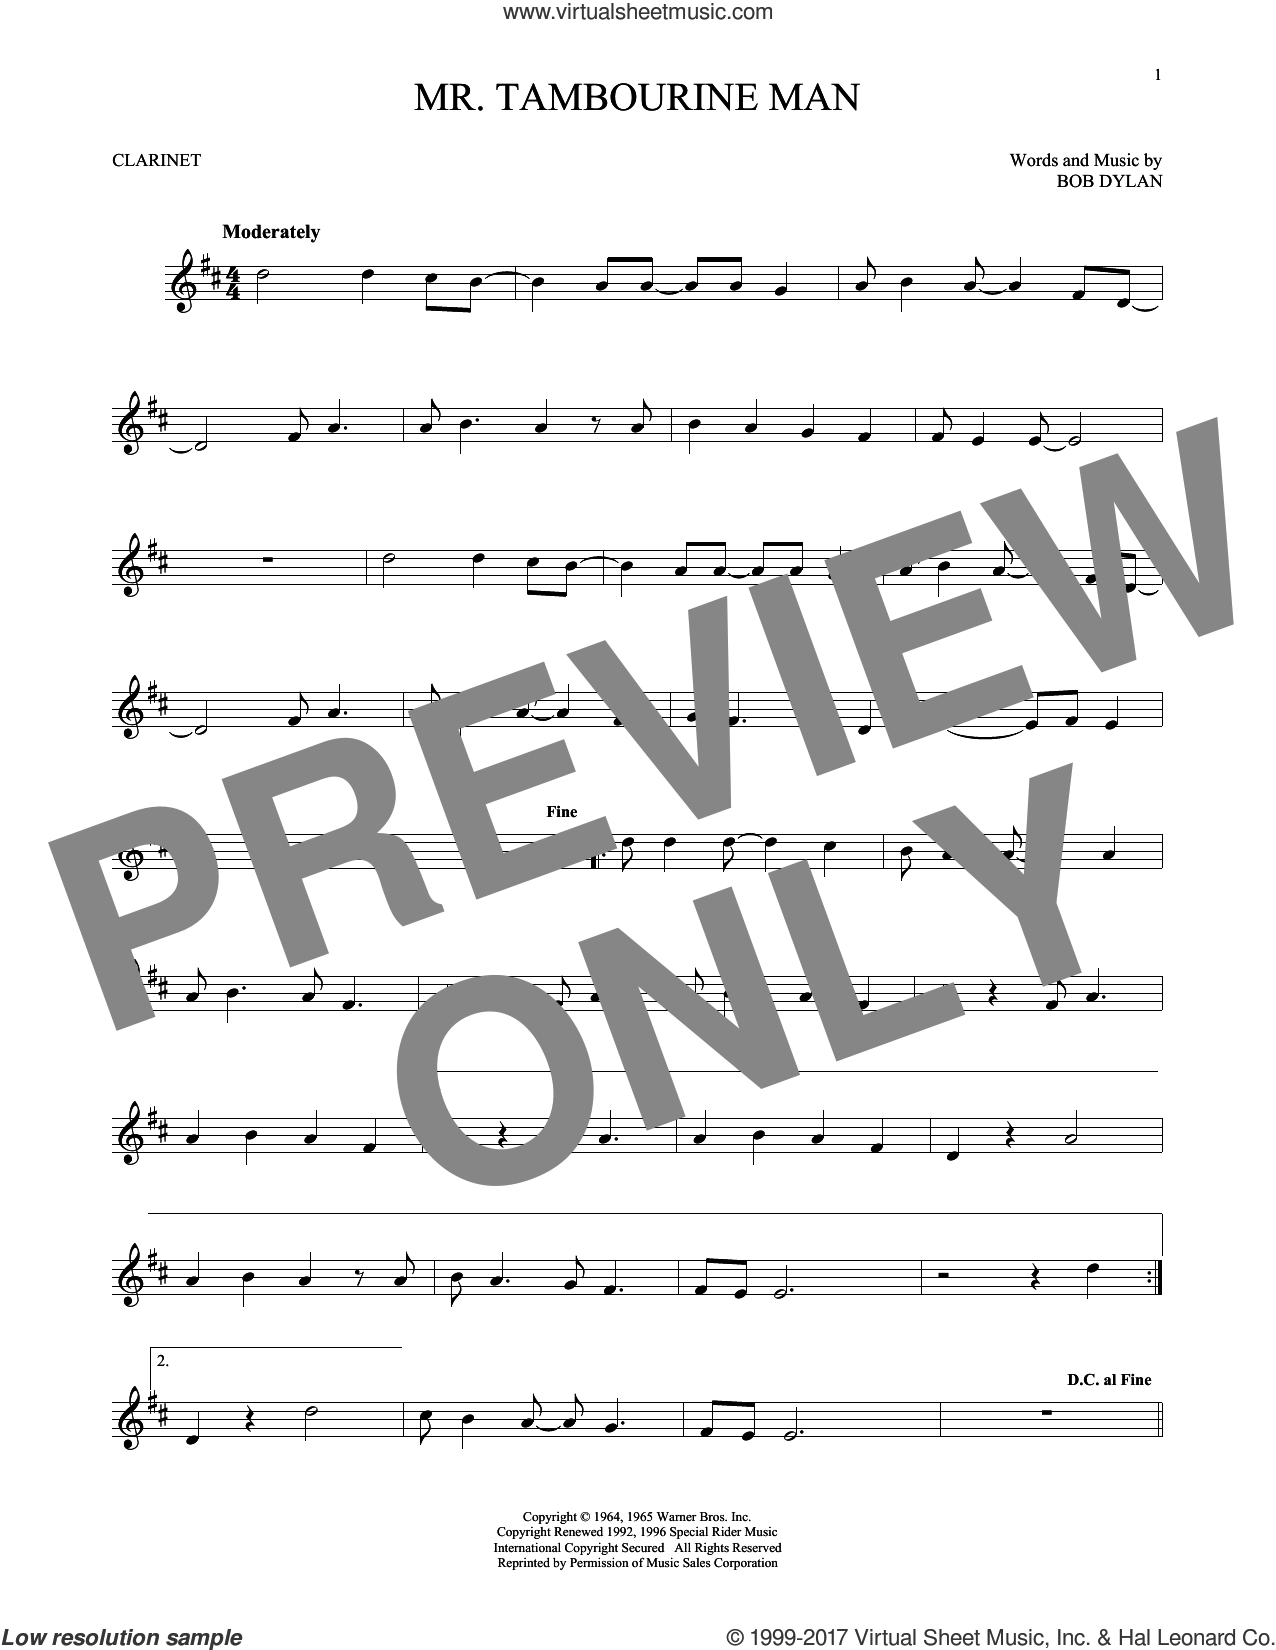 Mr. Tambourine Man sheet music for clarinet solo by Bob Dylan, intermediate skill level